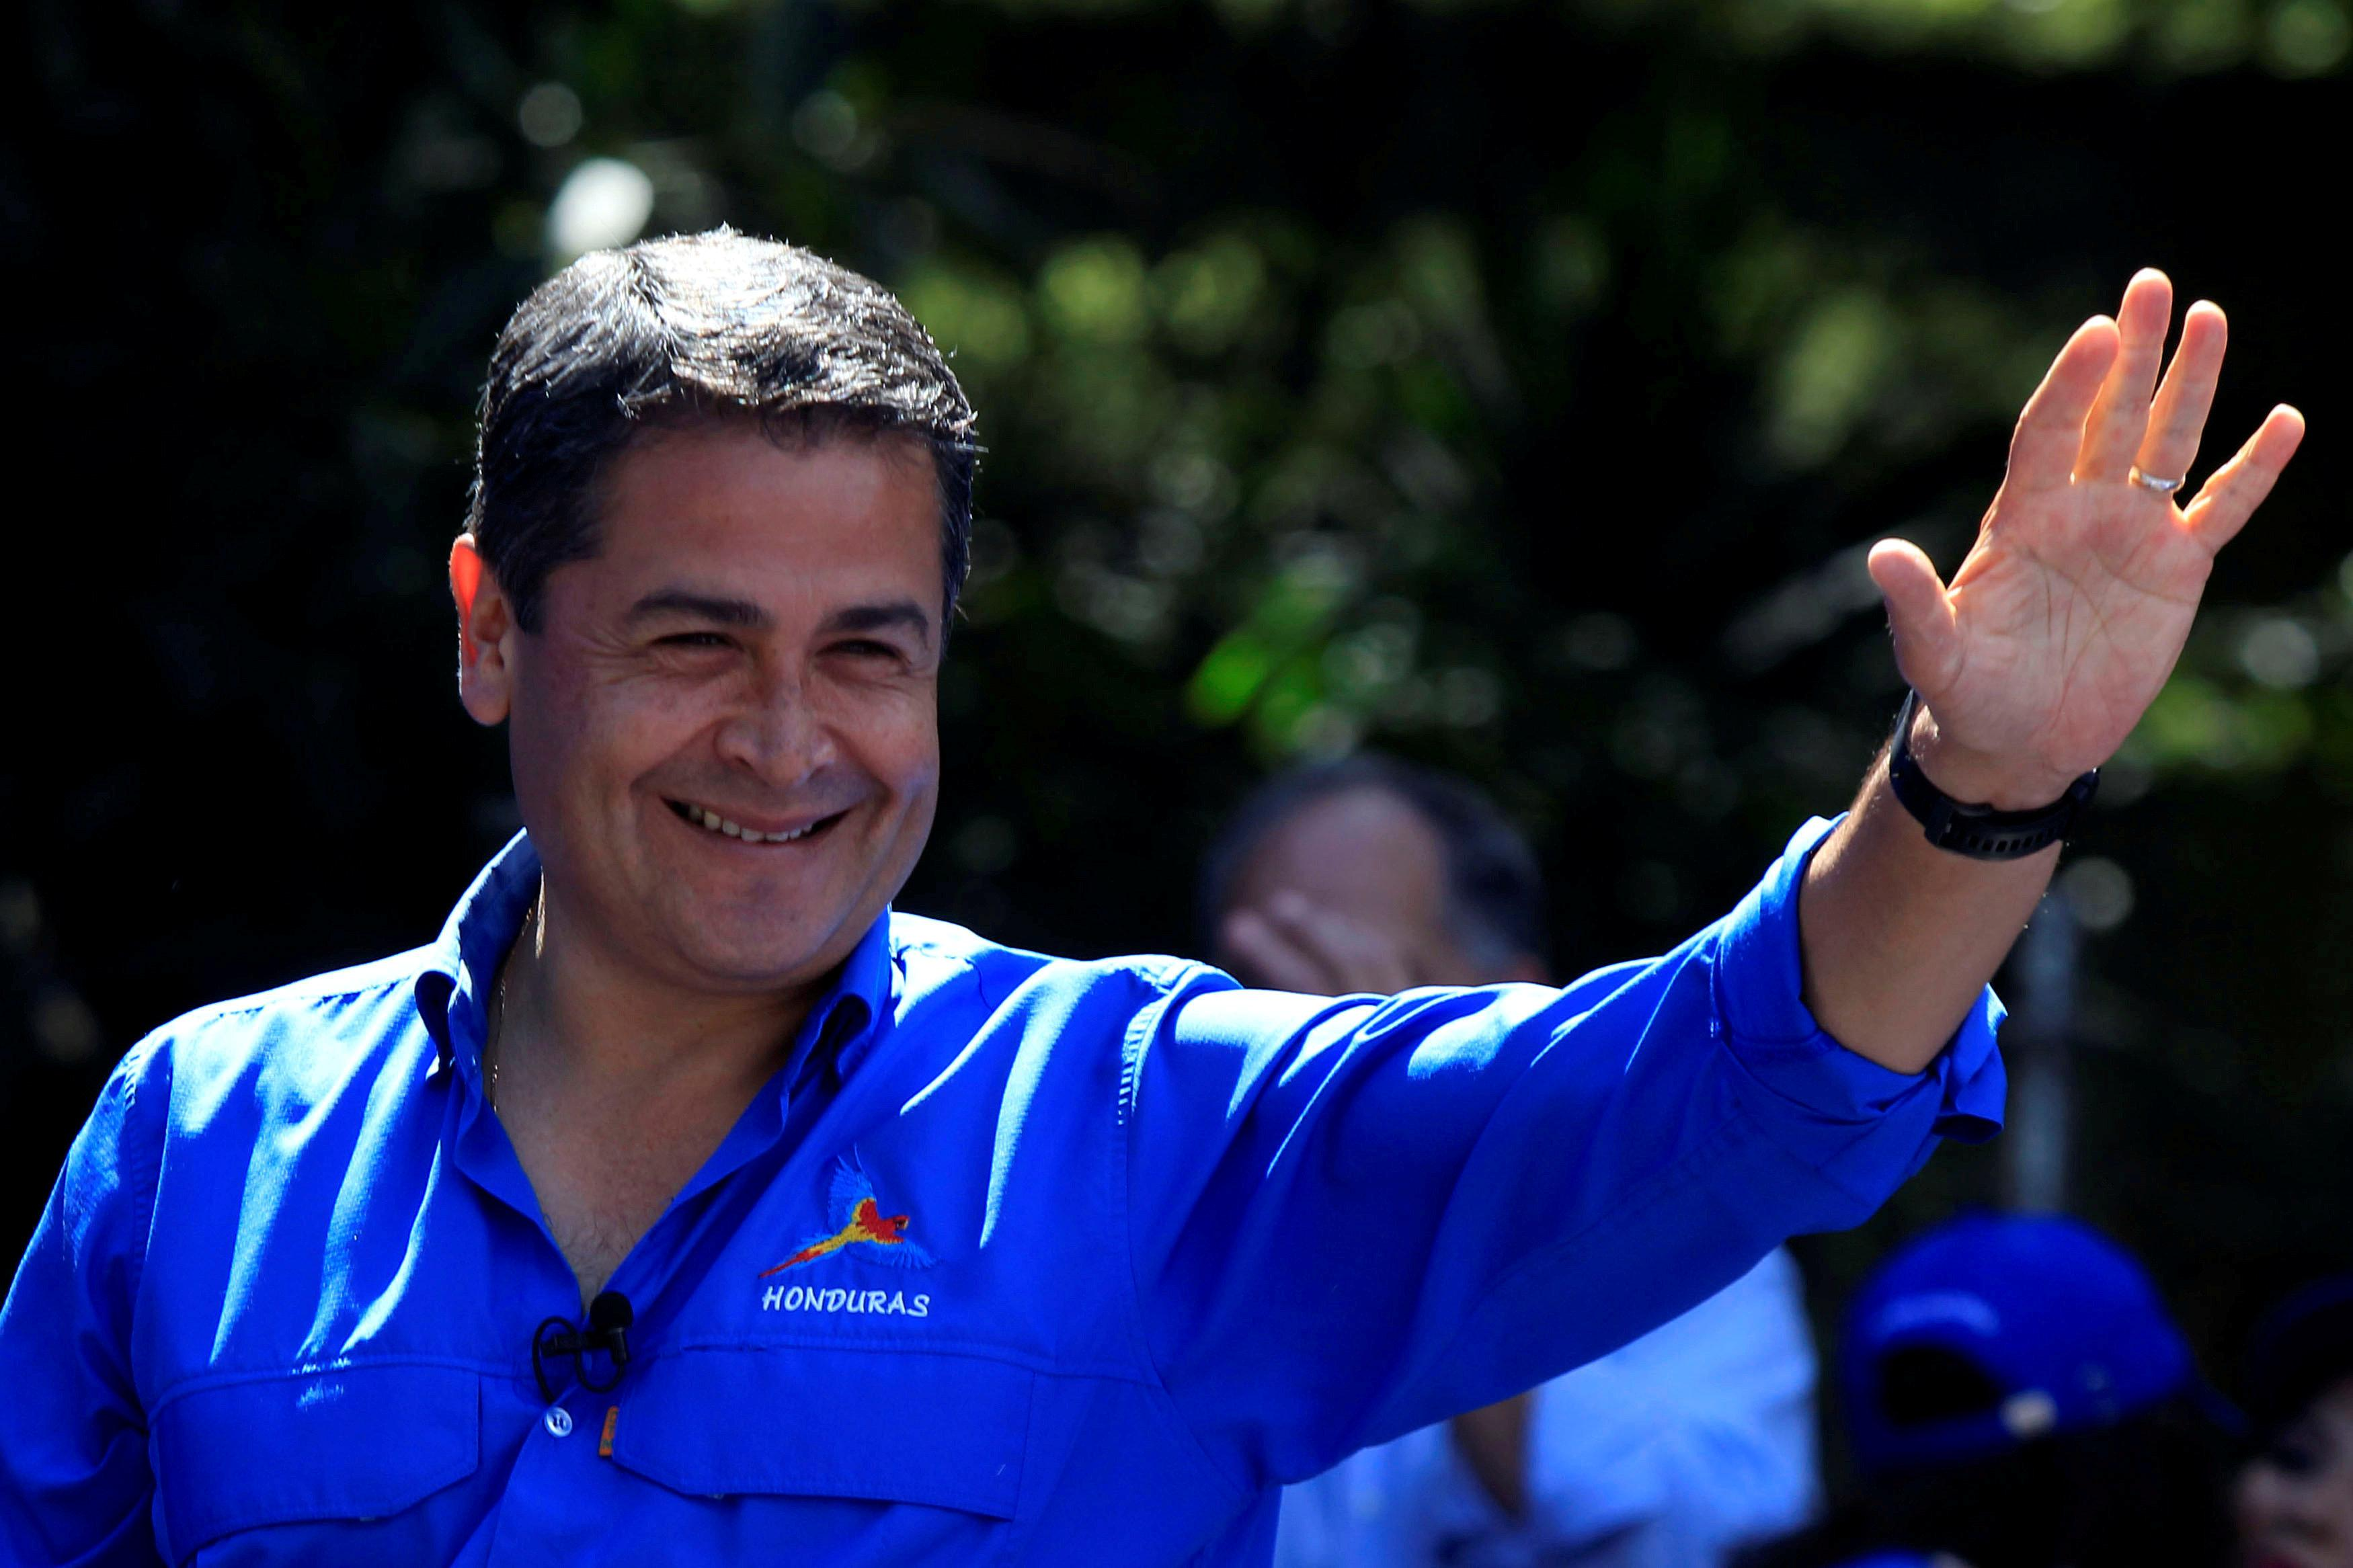 Honduras President and National Party candidate Juan Orlando Hernandez gestures during his closing campaign rally ahead of the upcoming presidential election, in Tegucigalpa, Honduras November 19, 2017. Jorge Cabrera